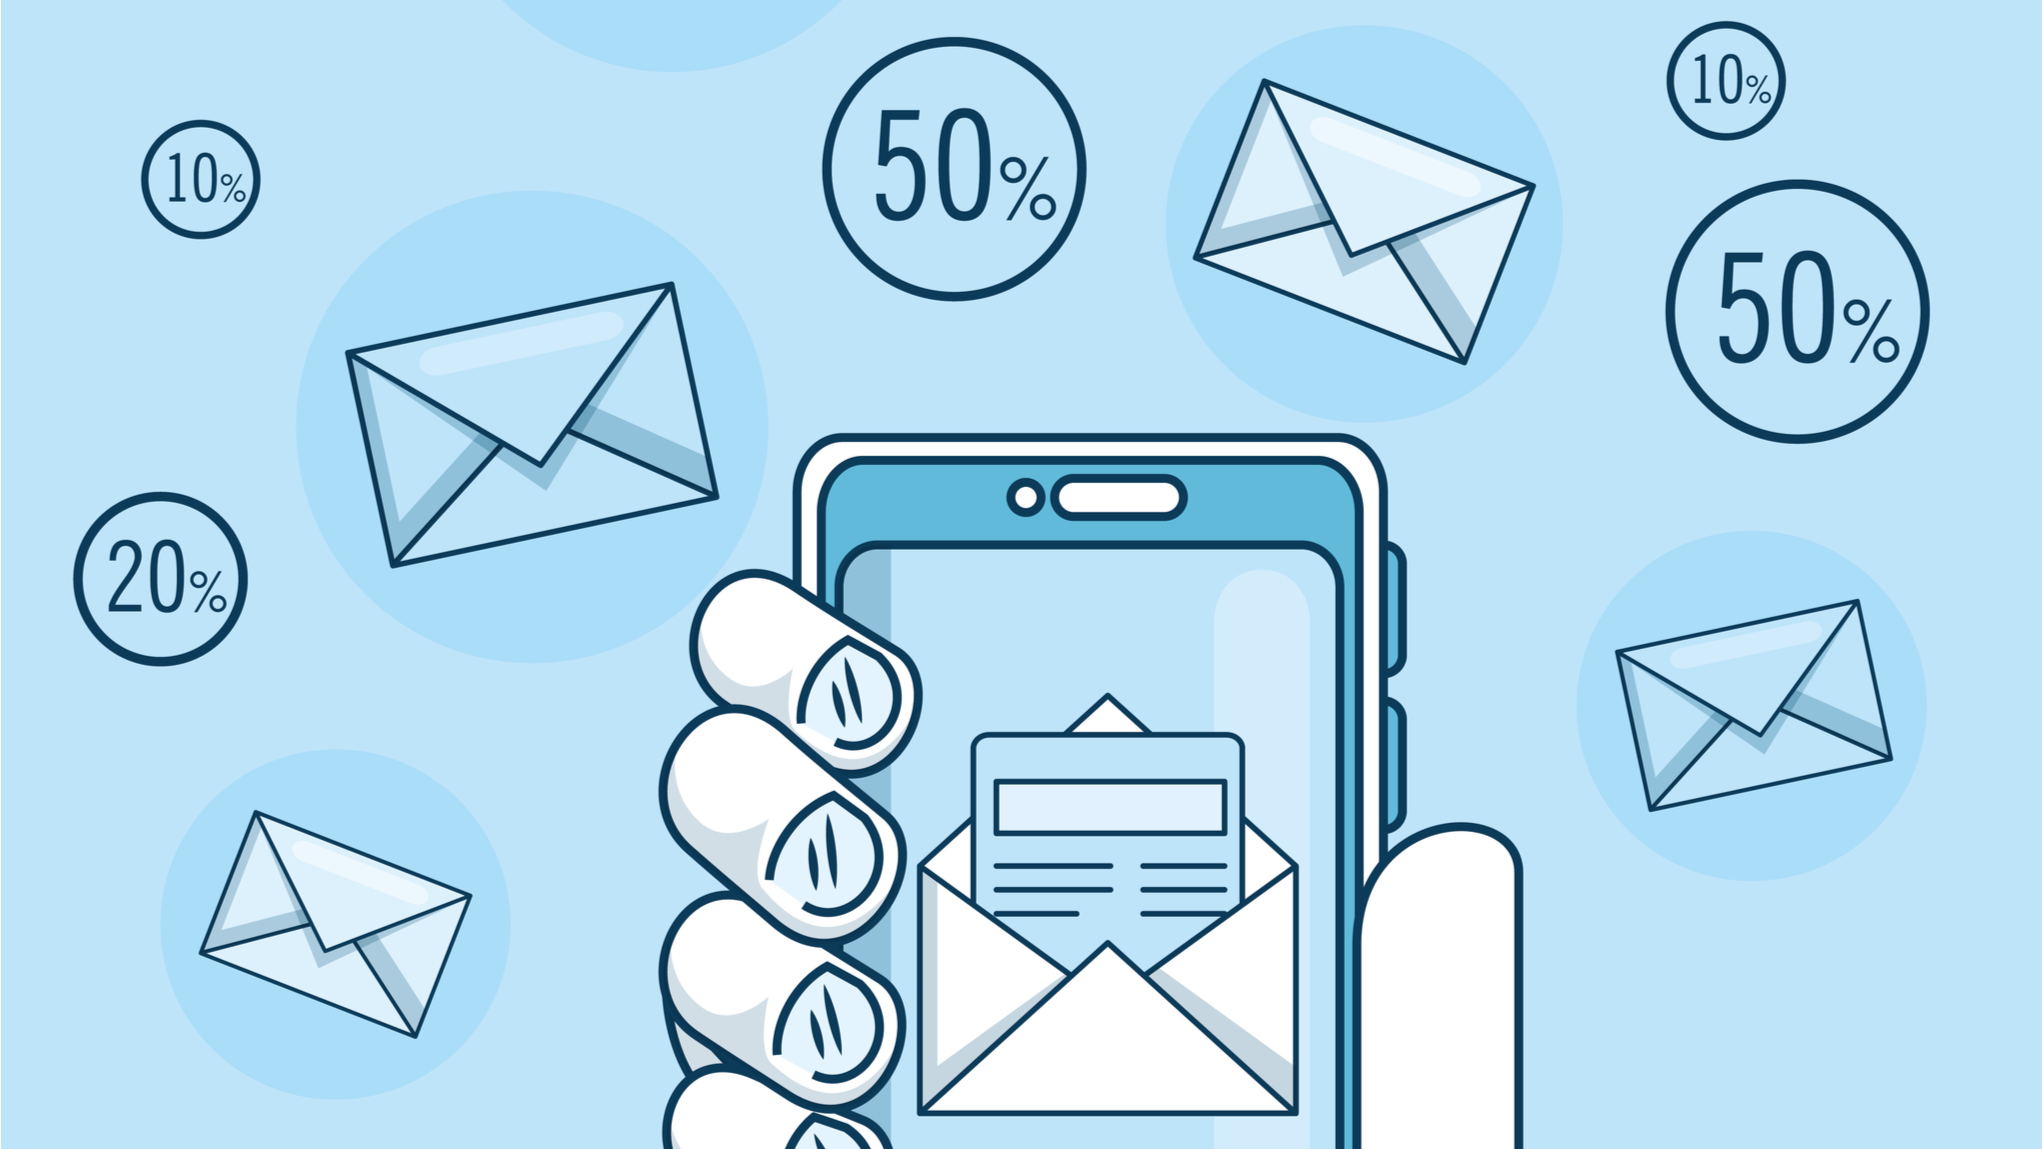 5 Types of Messages to send to Customers during COVID-19